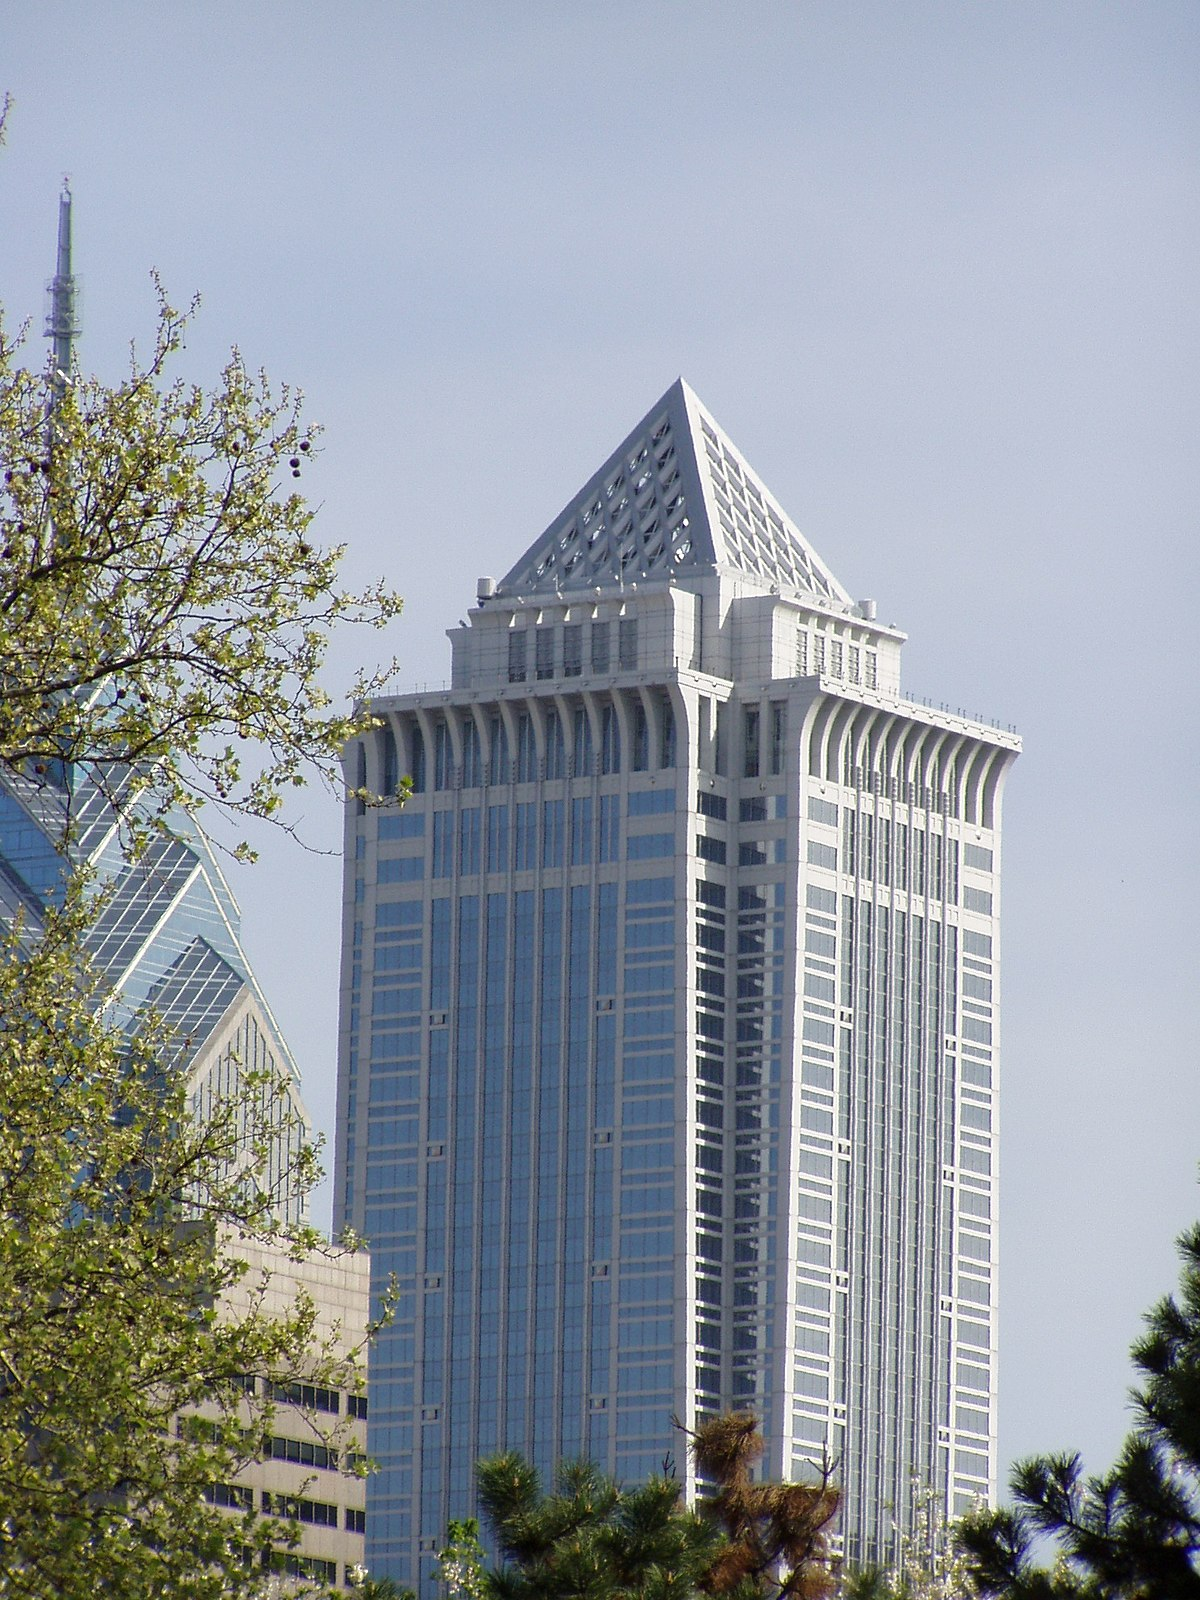 bny mellon center  philadelphia   u2013 wikipedia